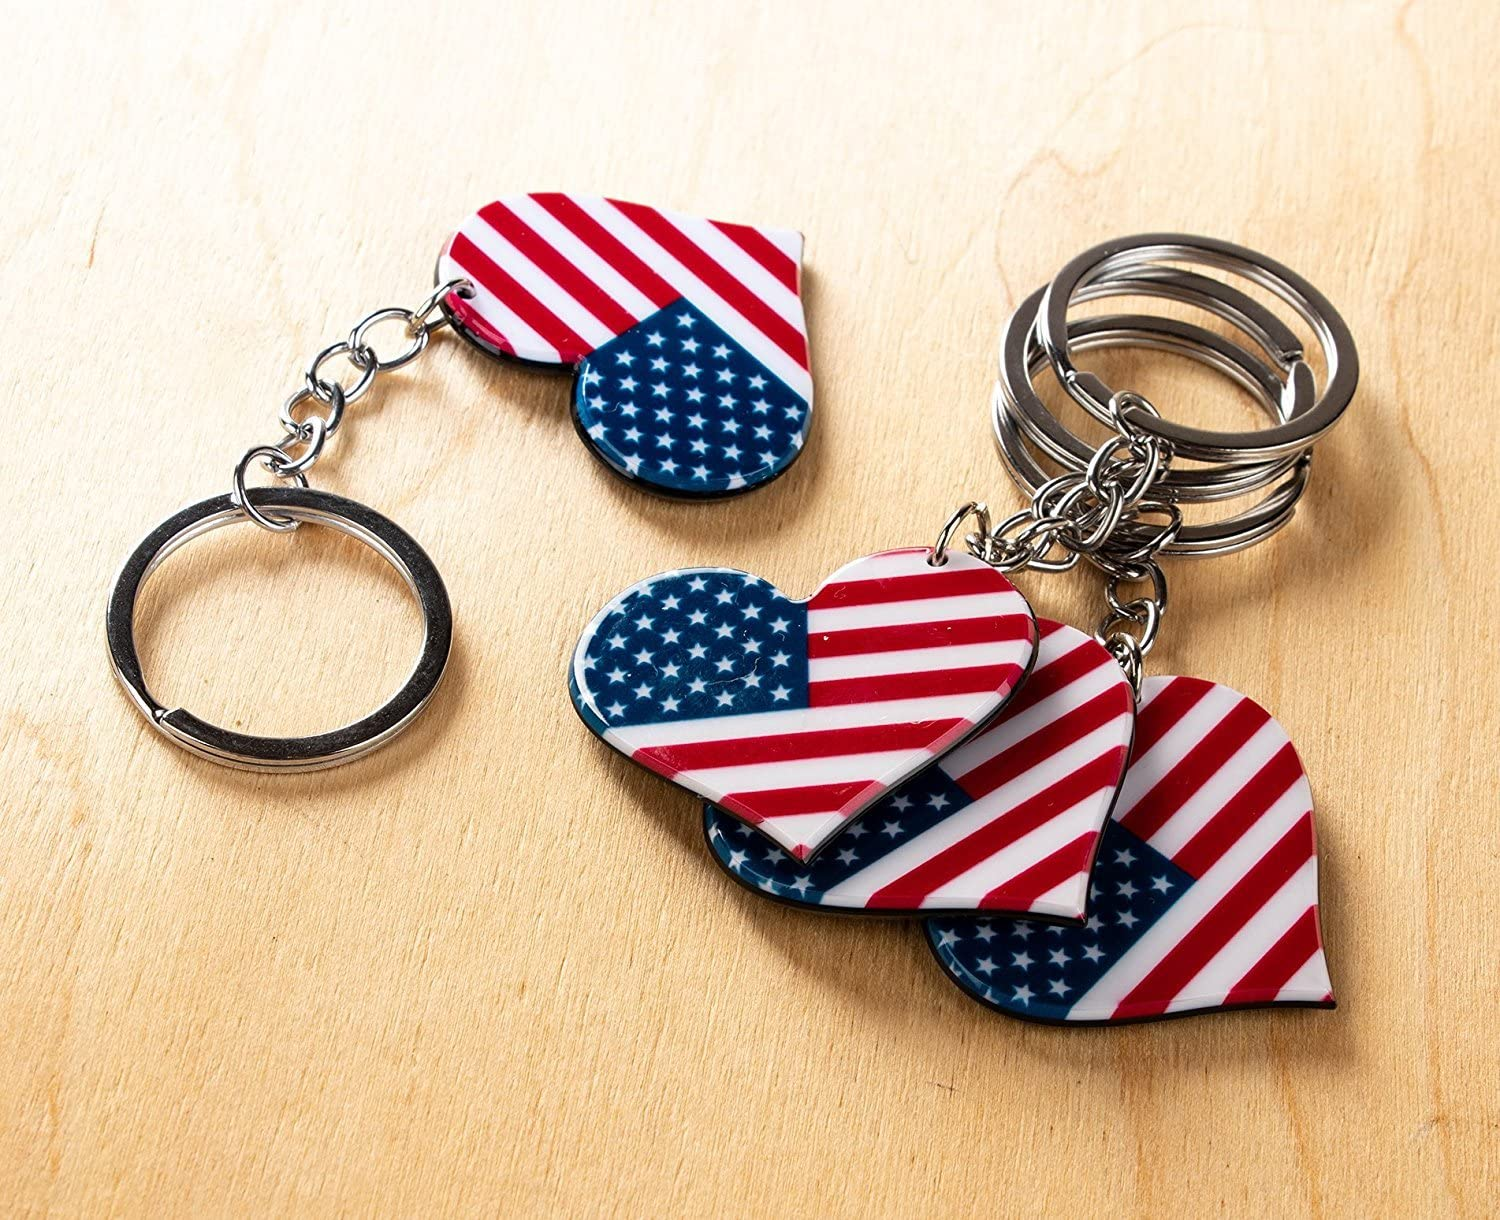 1.6 x 3.5 x 0.1 Inches 24 Pack Patriotic US Keyrings Labor Day and Veterans Day Festivities Souvenir Gifts for 4th of July American Flag Keychain